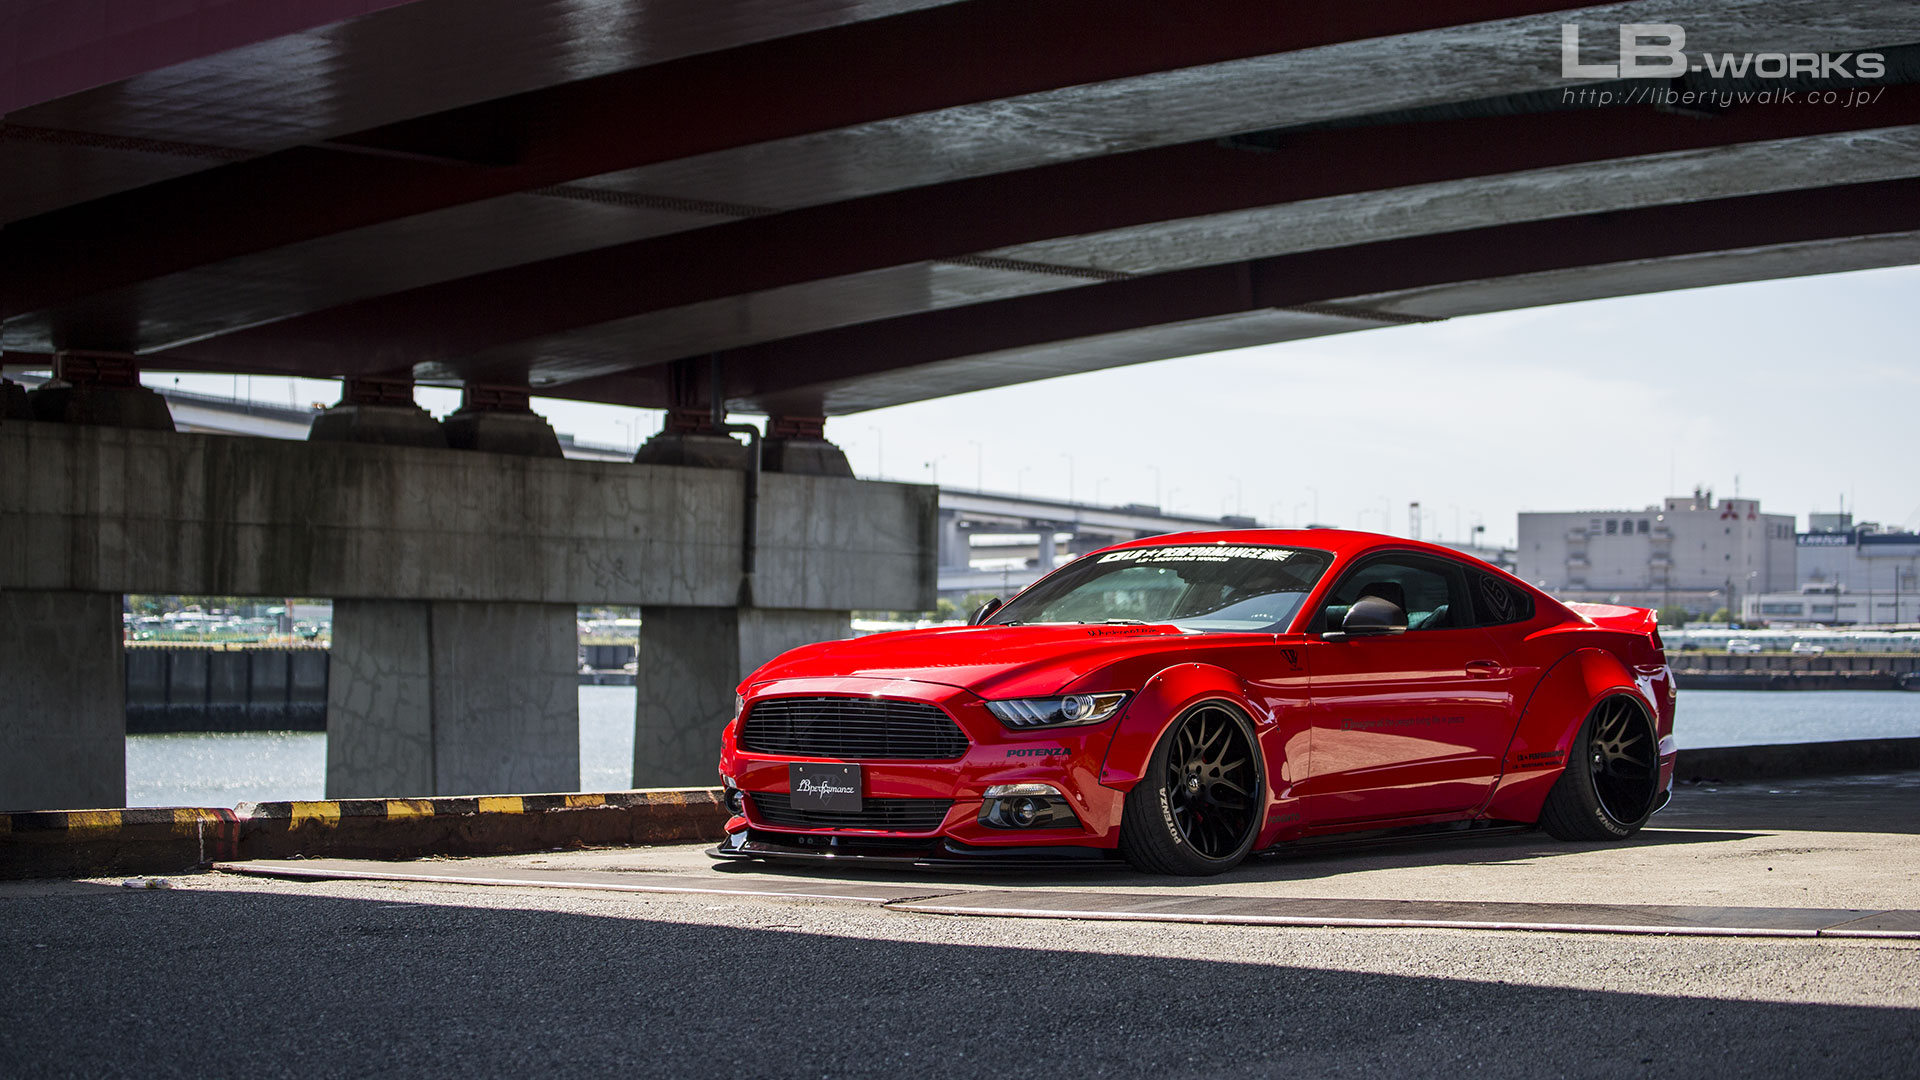 _MG_1574-21 LB-WORKS FORD MUSTANG 2015y〜